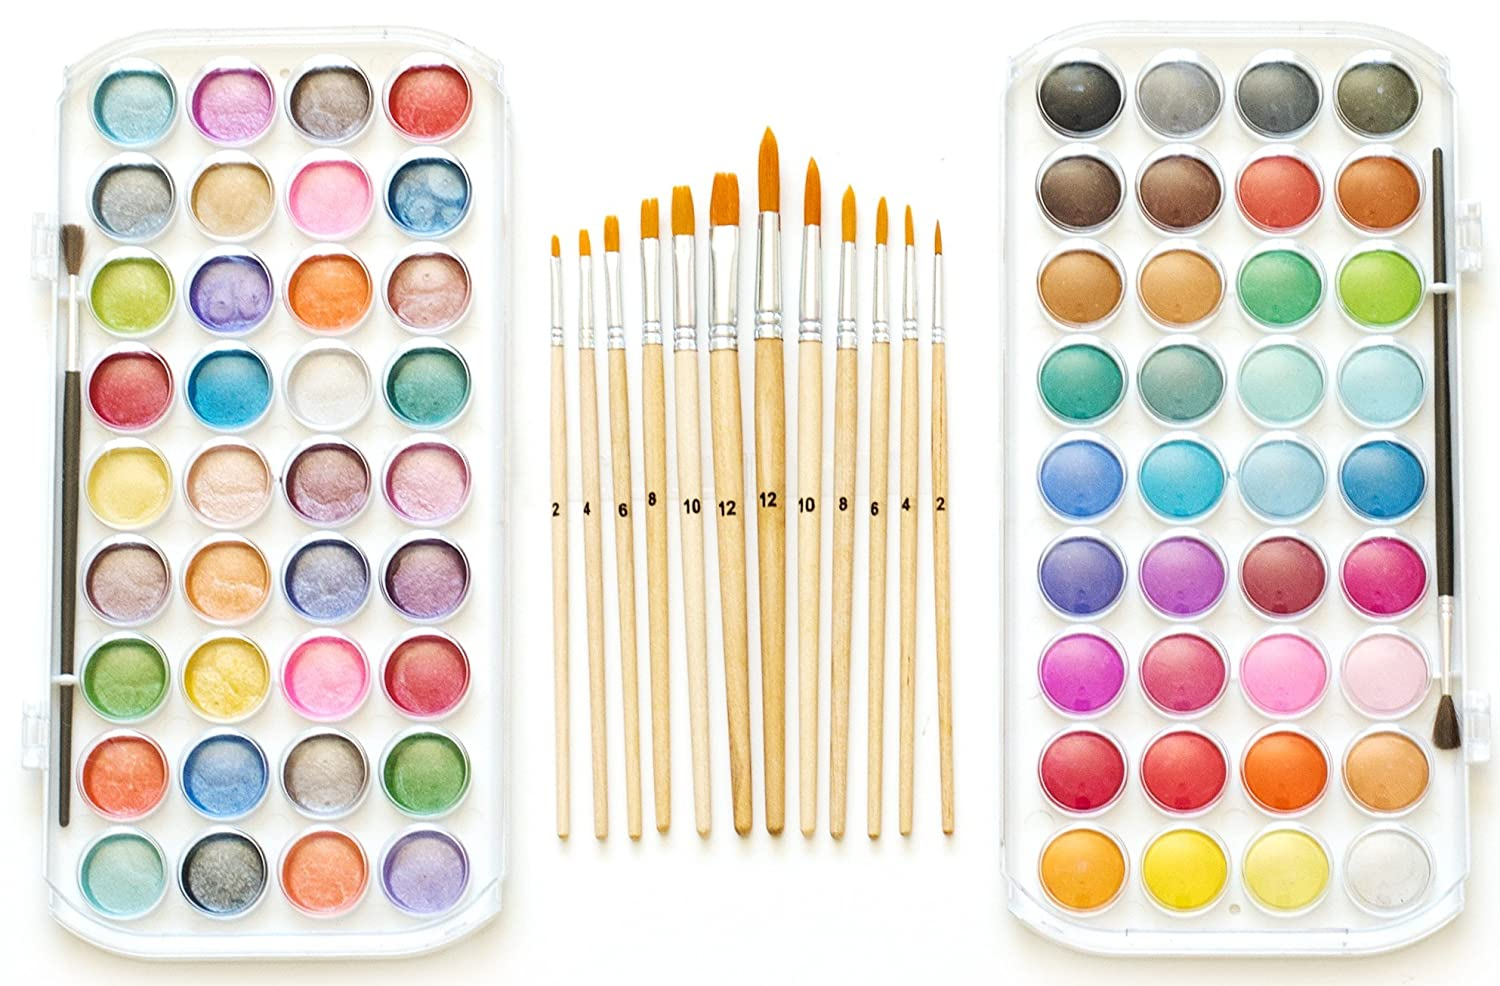 EconoArts Watercolor Paint Set, 72 Opaque Colors (Gouache) - Normal and Pearlescent, 6 Flat, 6 Round, and 2 Basic Brushes FEQM 4336952670